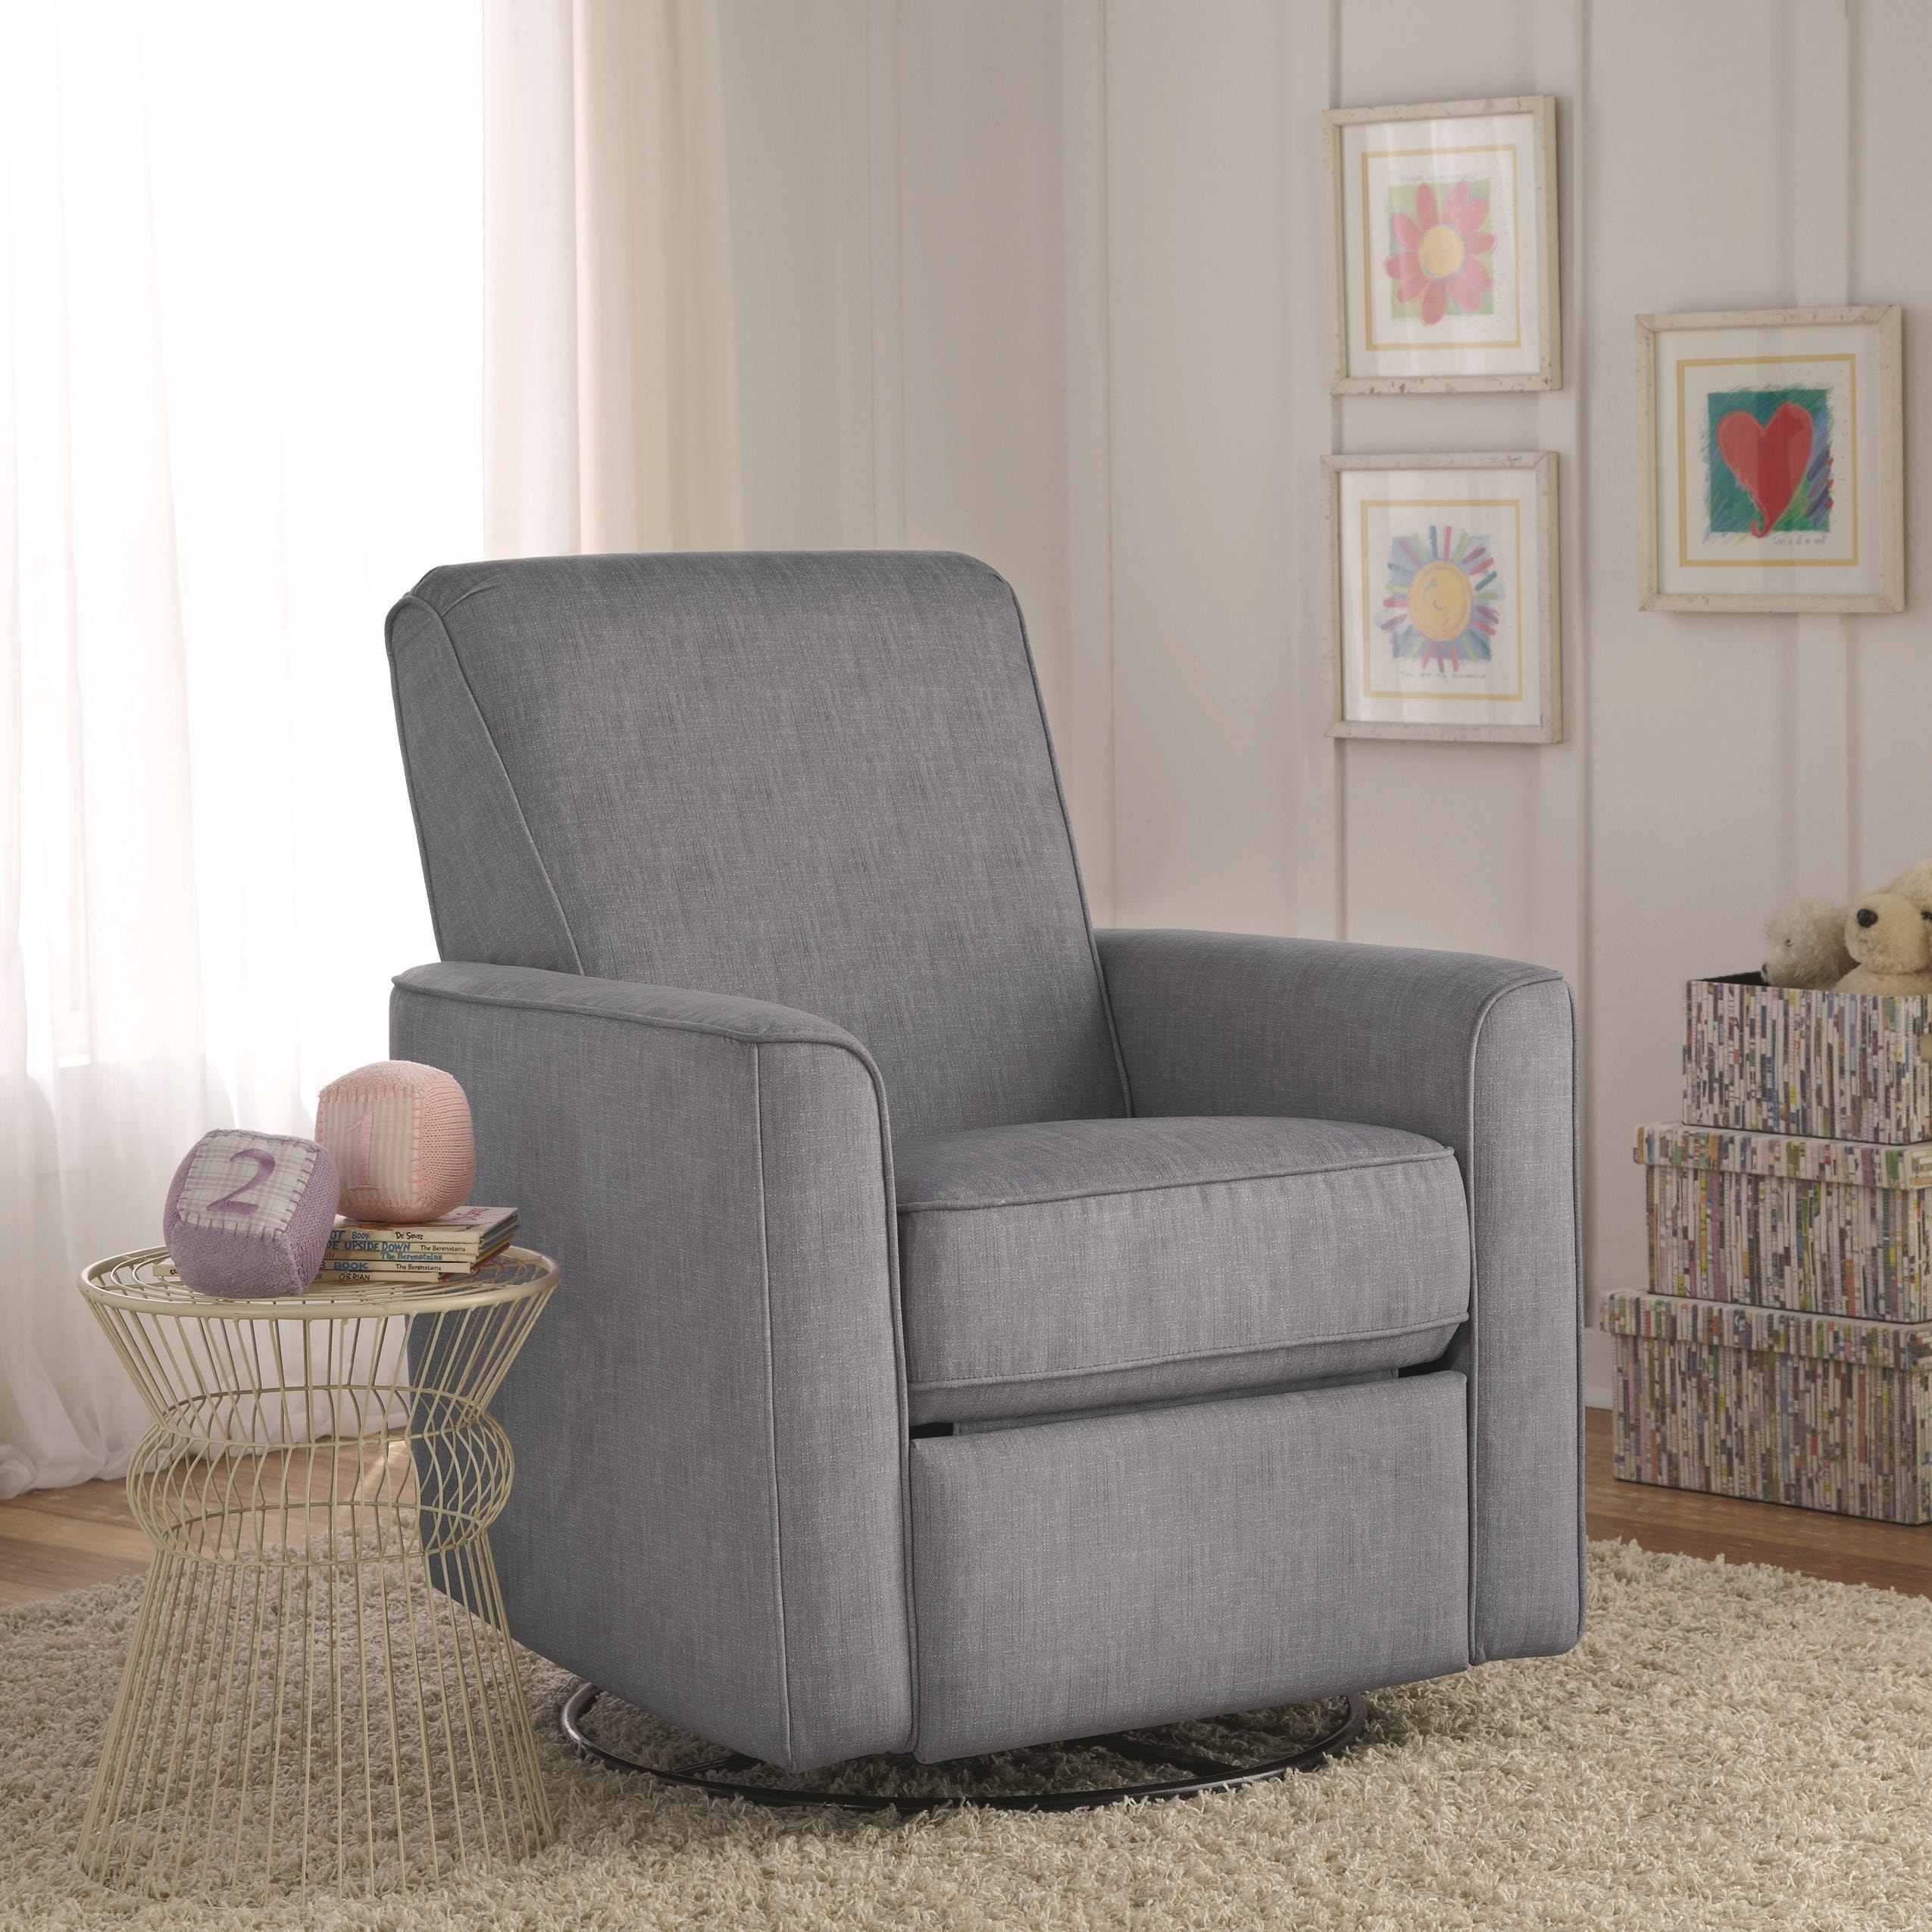 Zoey Grey Nursery Swivel Glider Recliner Chair Overstock